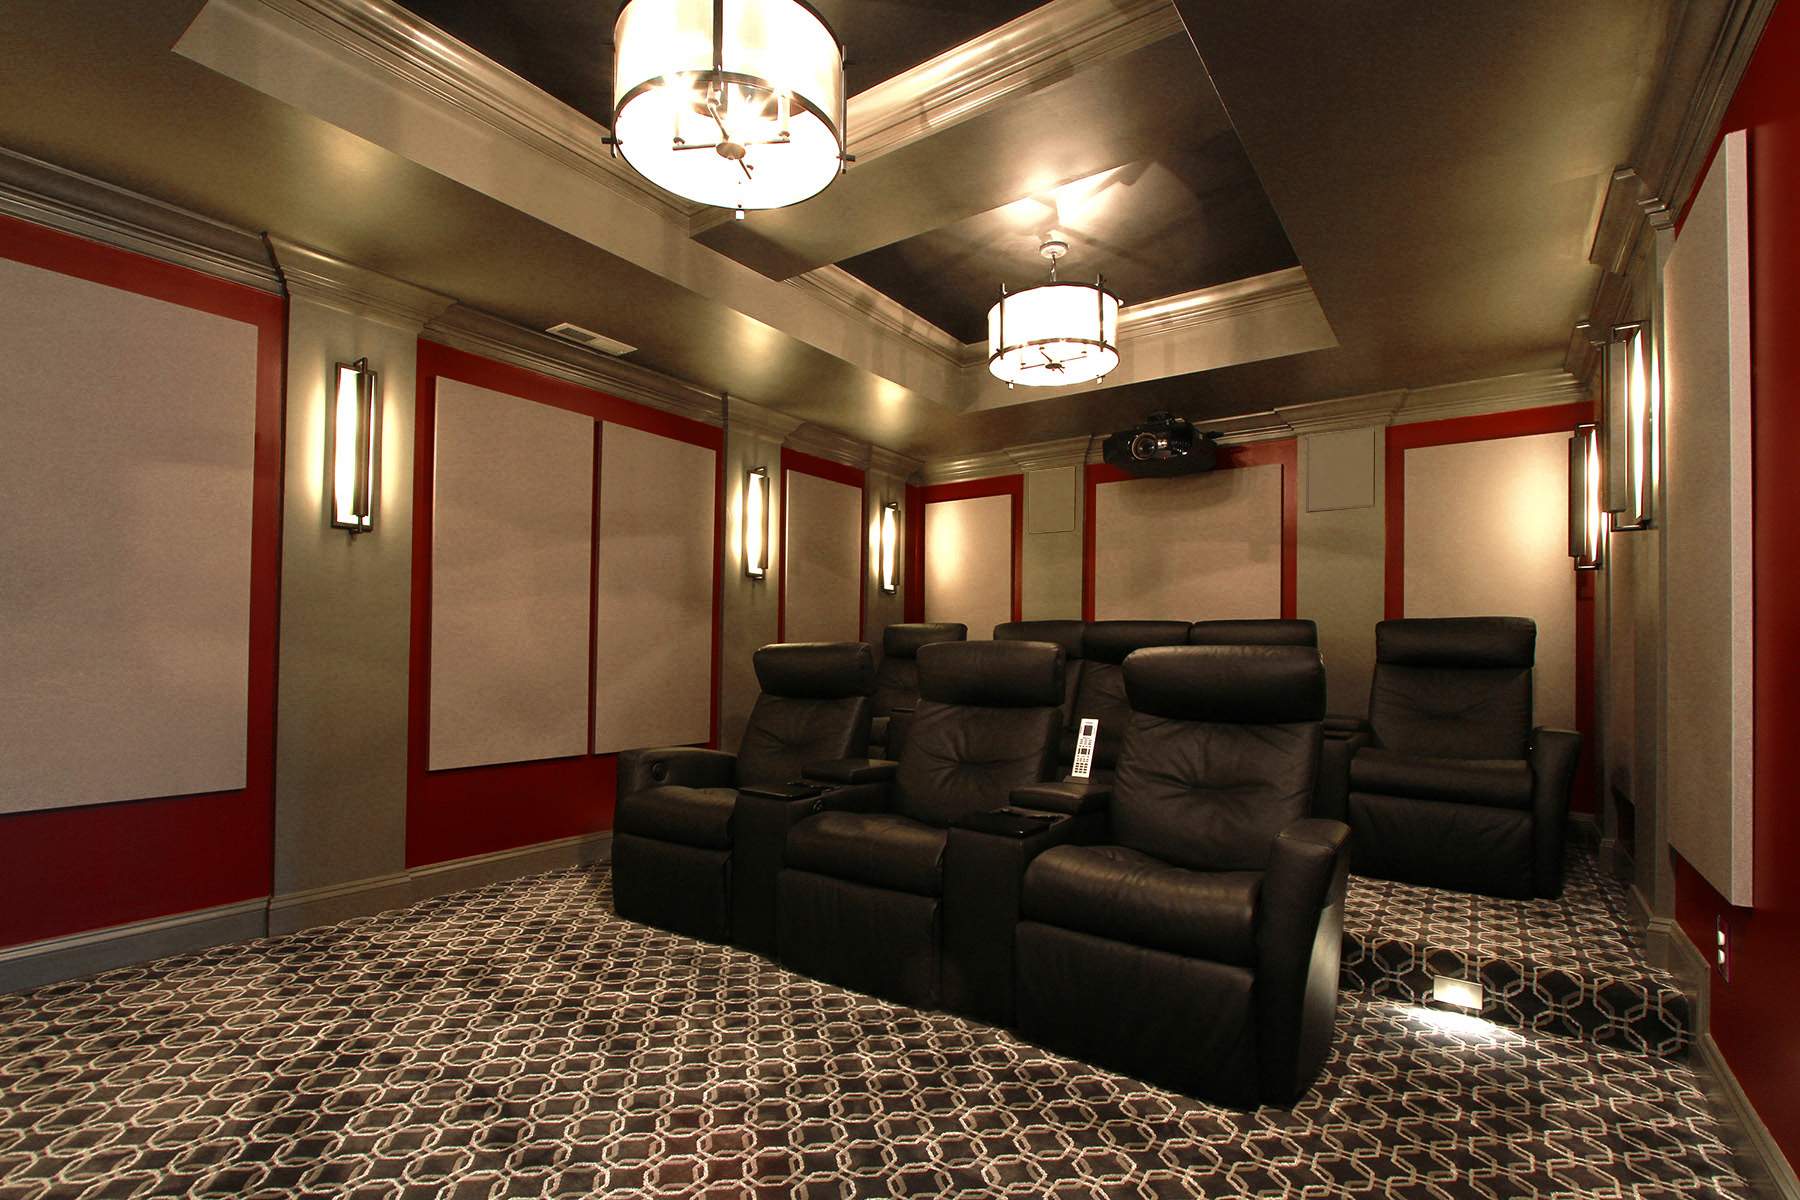 Mesmerizing best home theater design inspiration pics design ideas dievoon - Best home theater design inspiration ...